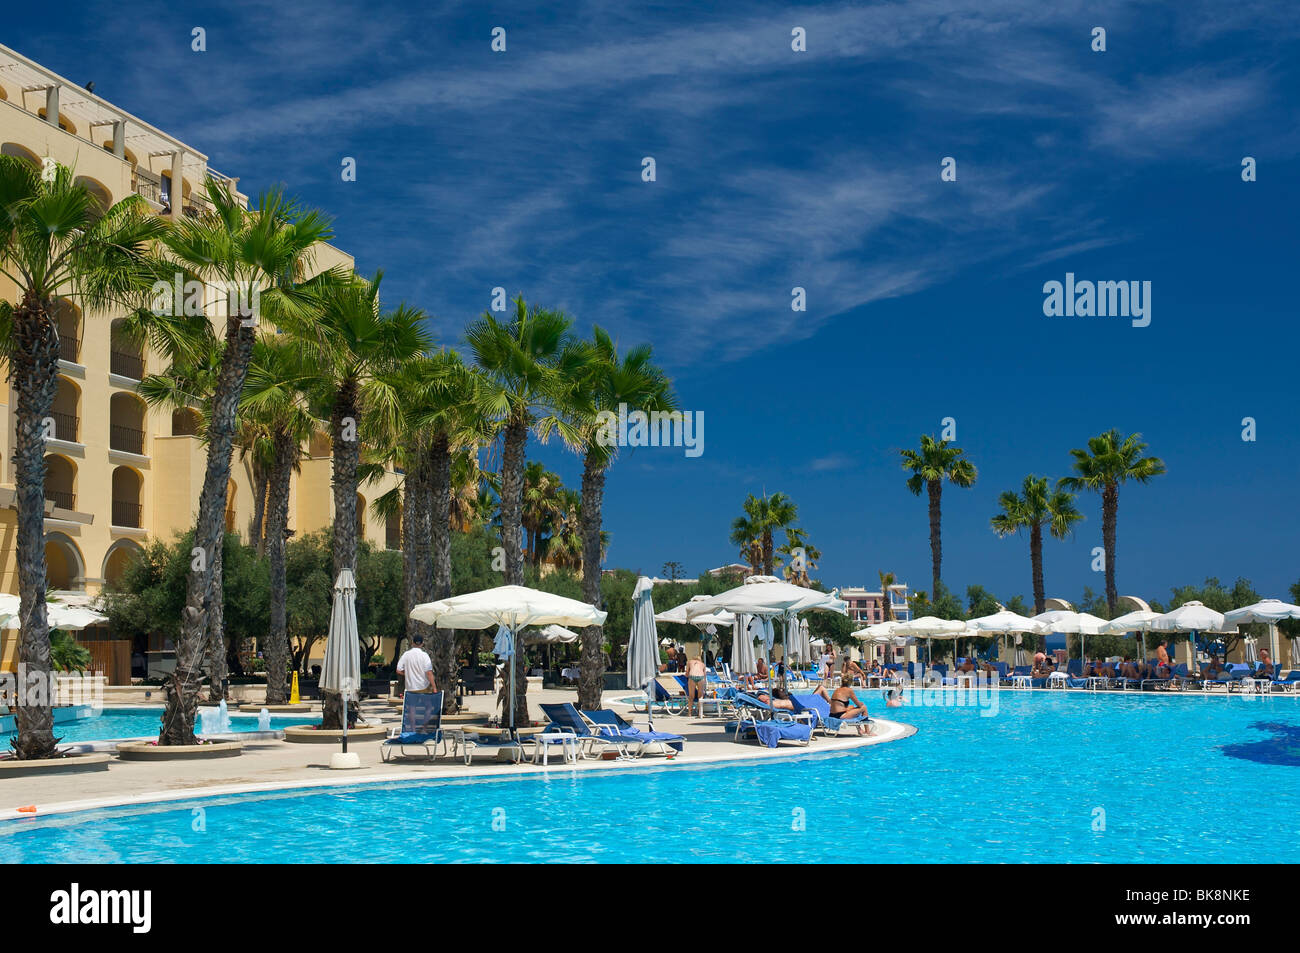 Hilton Hotel in St. Julians, Malta, Europe Stock Photo